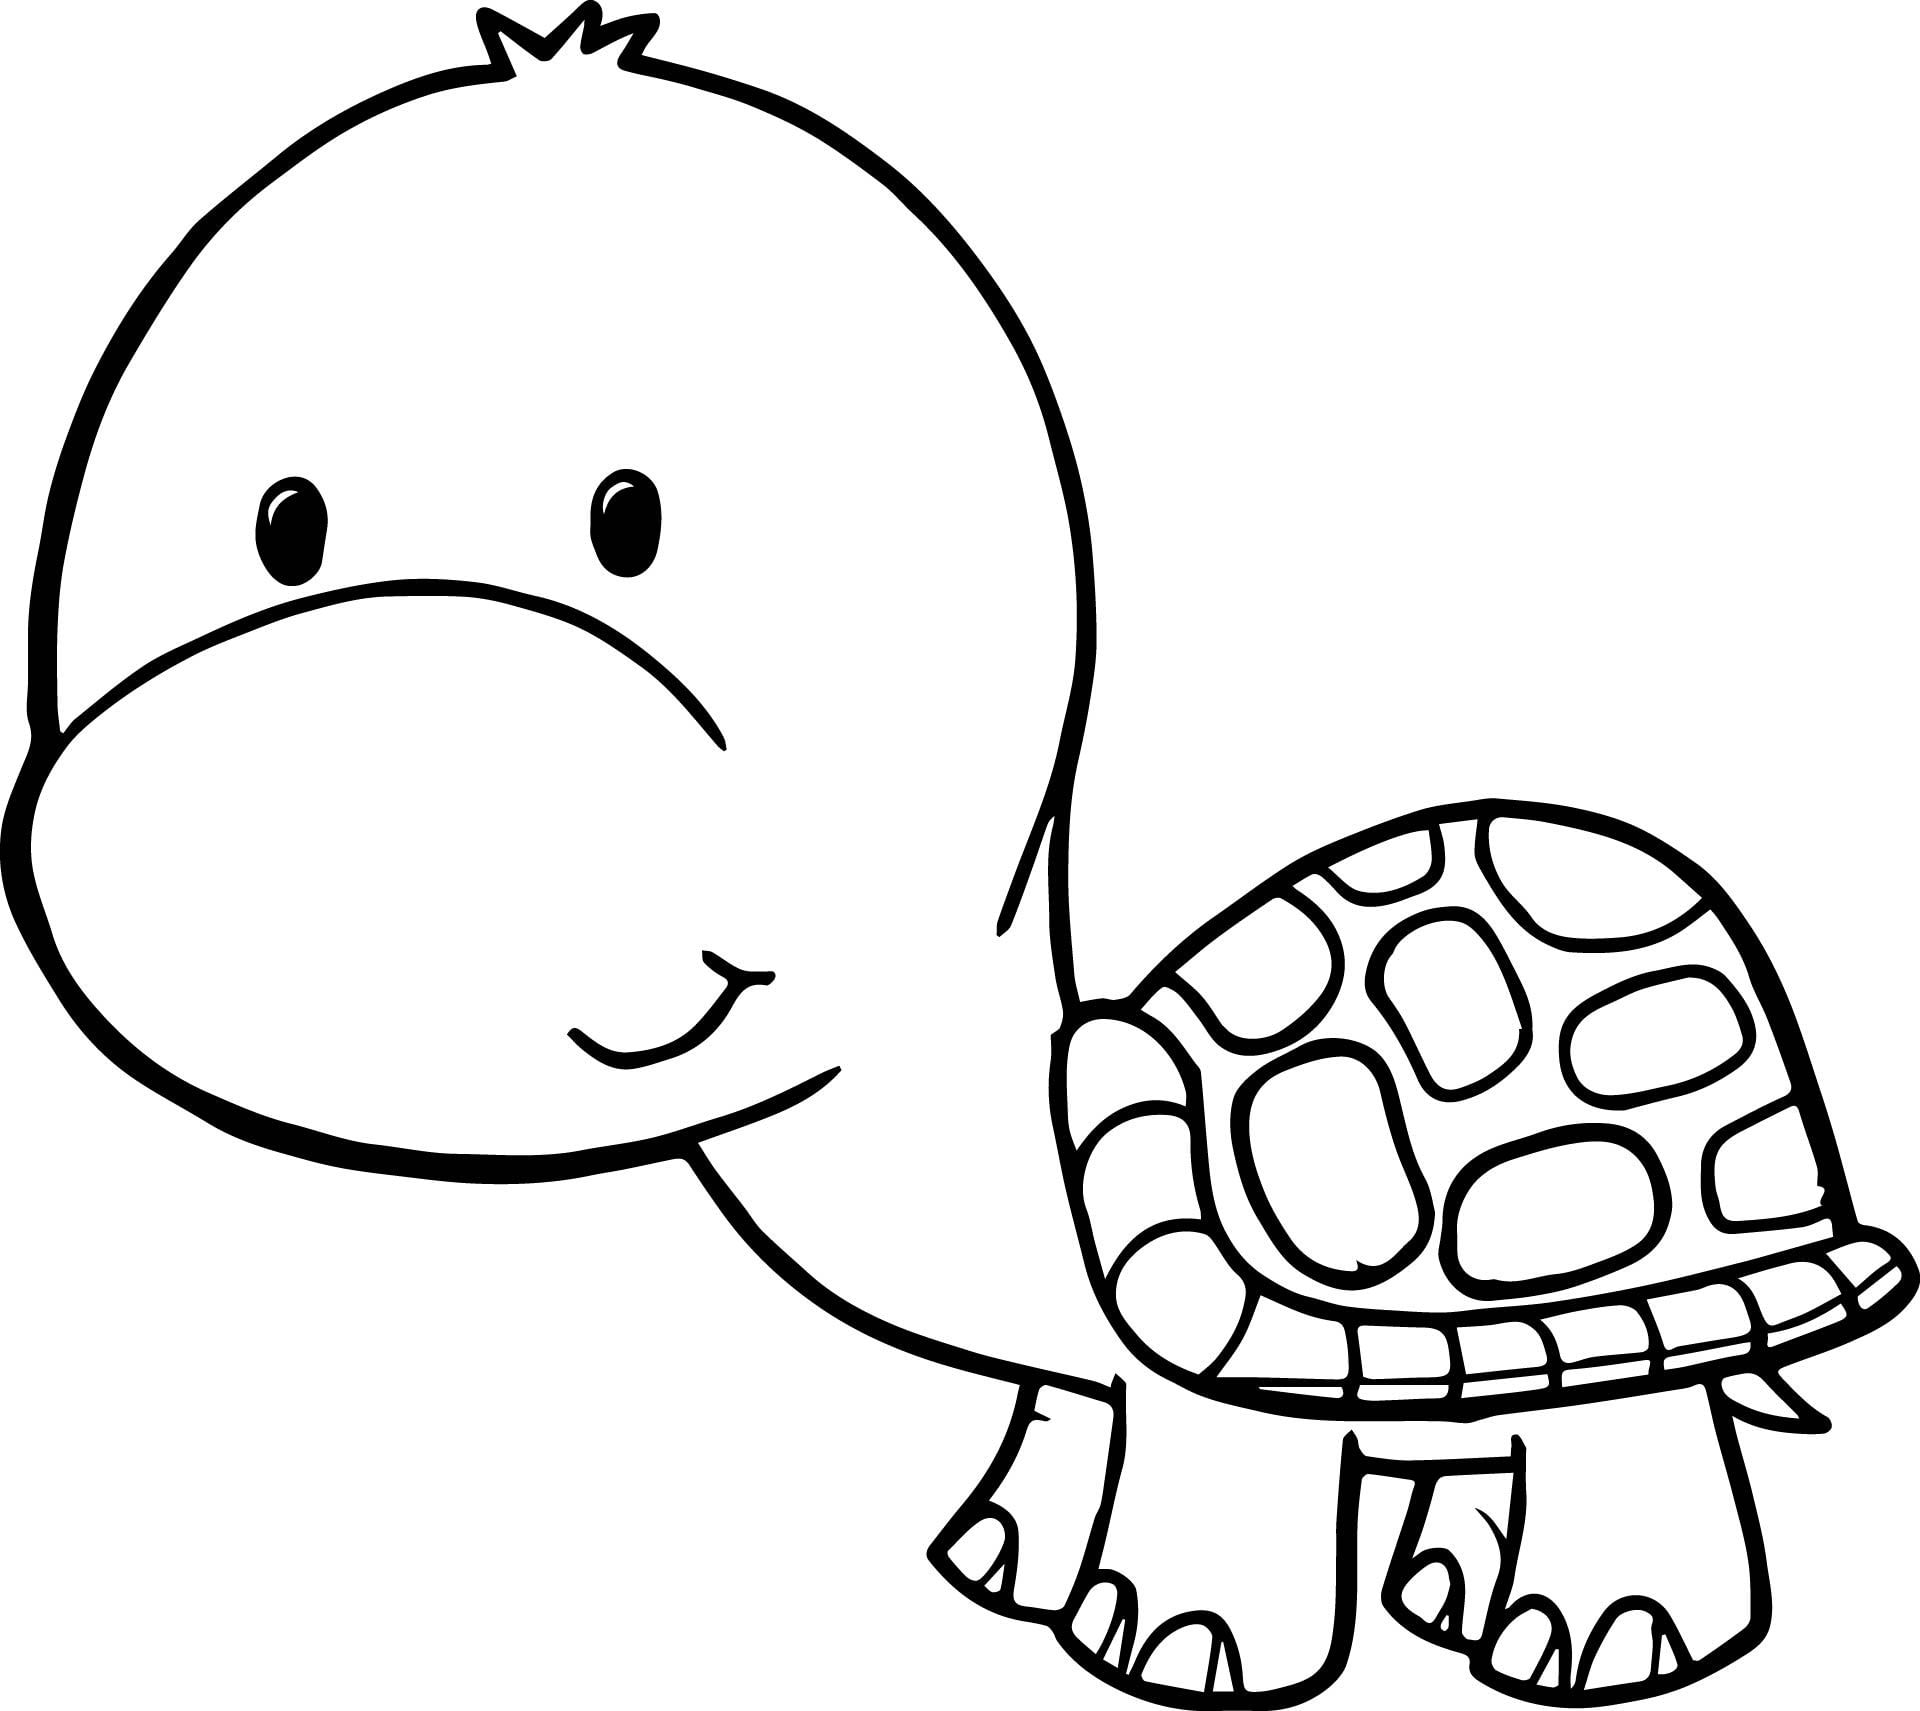 tortoise coloring page turtles to download for free turtles kids coloring pages coloring page tortoise